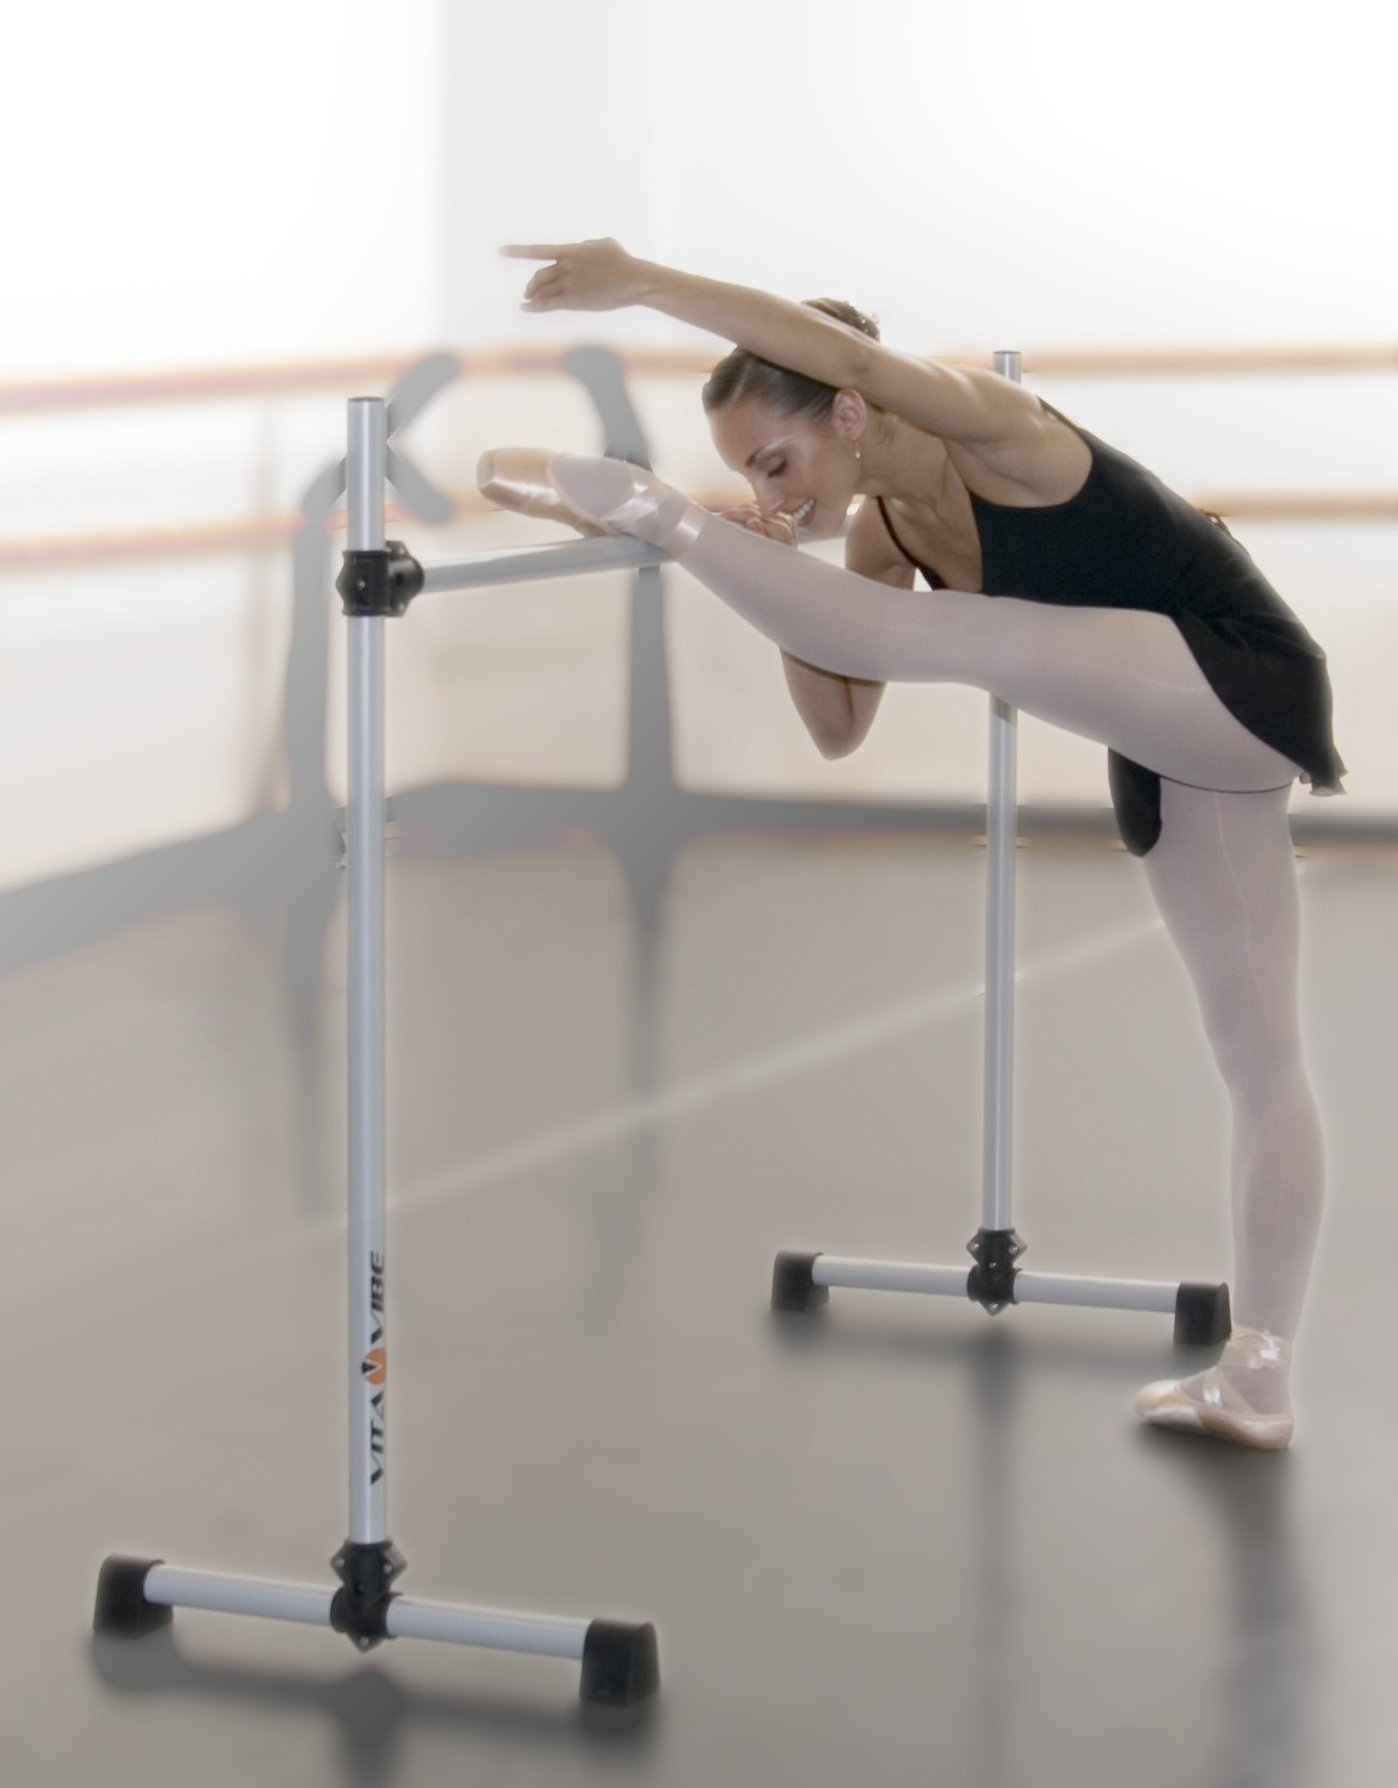 Vita Vibe Ballet Barre - B48 4ft Portable Single Bar - Freestanding Stretch/Dance Bar - Made in the USA by Vita Vibe